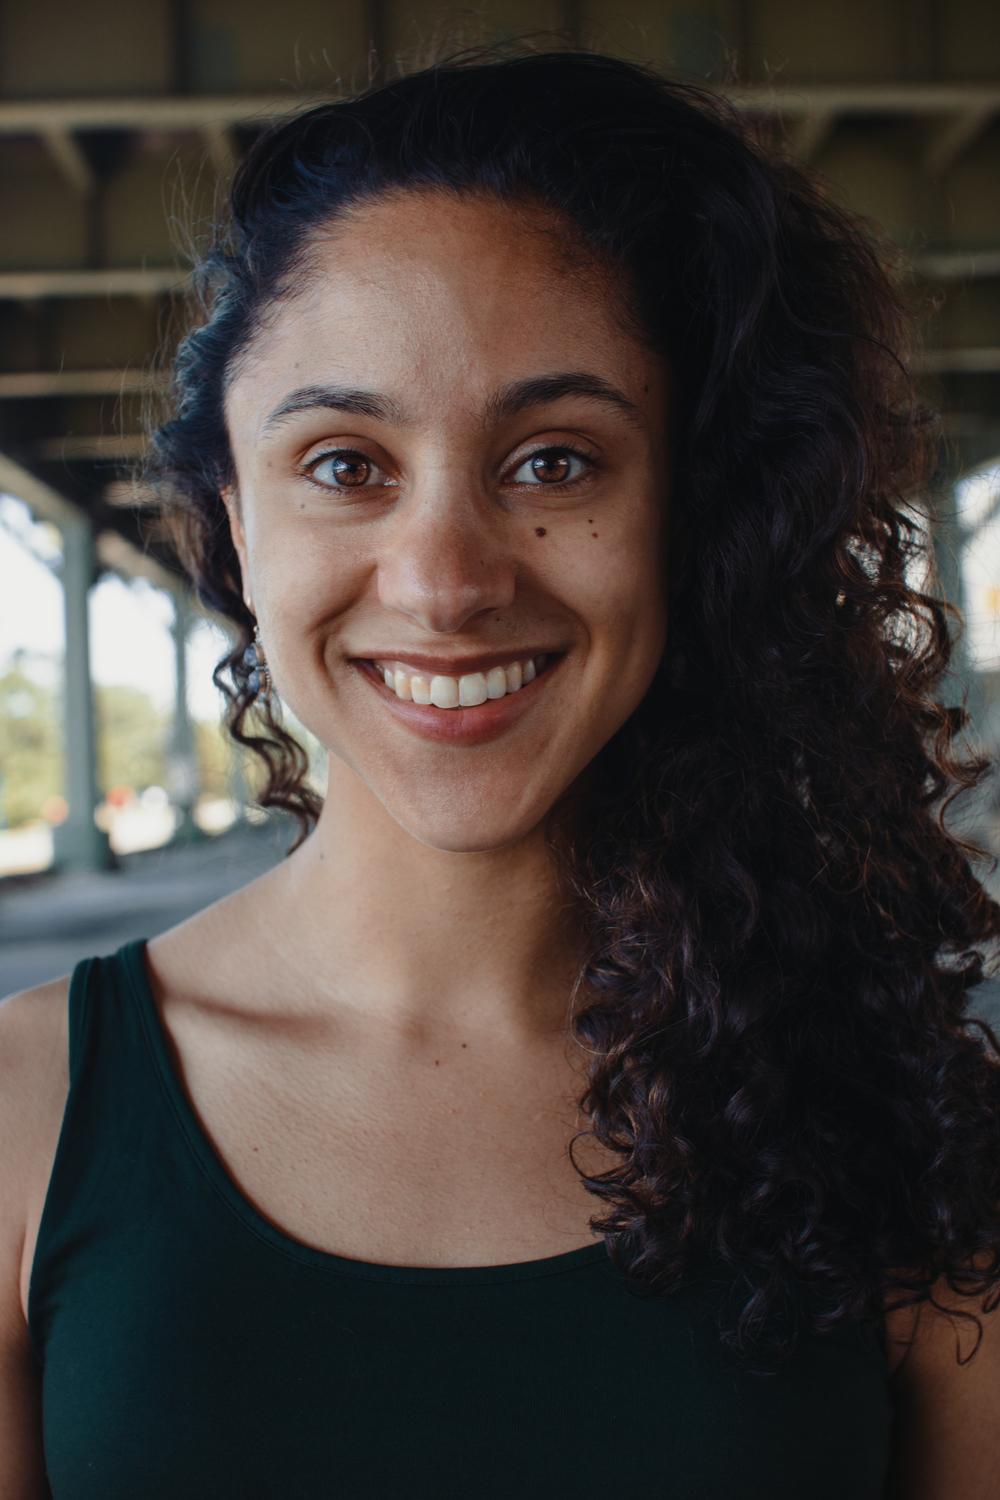 Born & raised in San Francisco,Ana Billingsley(performer) began dancing at age six. Ana danced with the Oberlin Dance Collective (ODC), City Ballet School, the San Francisco Academy of Ballet, & the Lowell High School Dance Company. In 2009, Ana moved to New York to attend Hunter College, where she majored in Africana, Puerto Rican, & Latino Studies & minored in Public Policy. While in college, Ana performed with the Hunter College Dance Company & era Dance Collective. Ana loves New York City, eating, reading, watching other people perform, & attempting to relive her younger, uninjured dance days. She is very grateful to be a part of this amazing project! Jo Chiang | Cup of Jo Photography